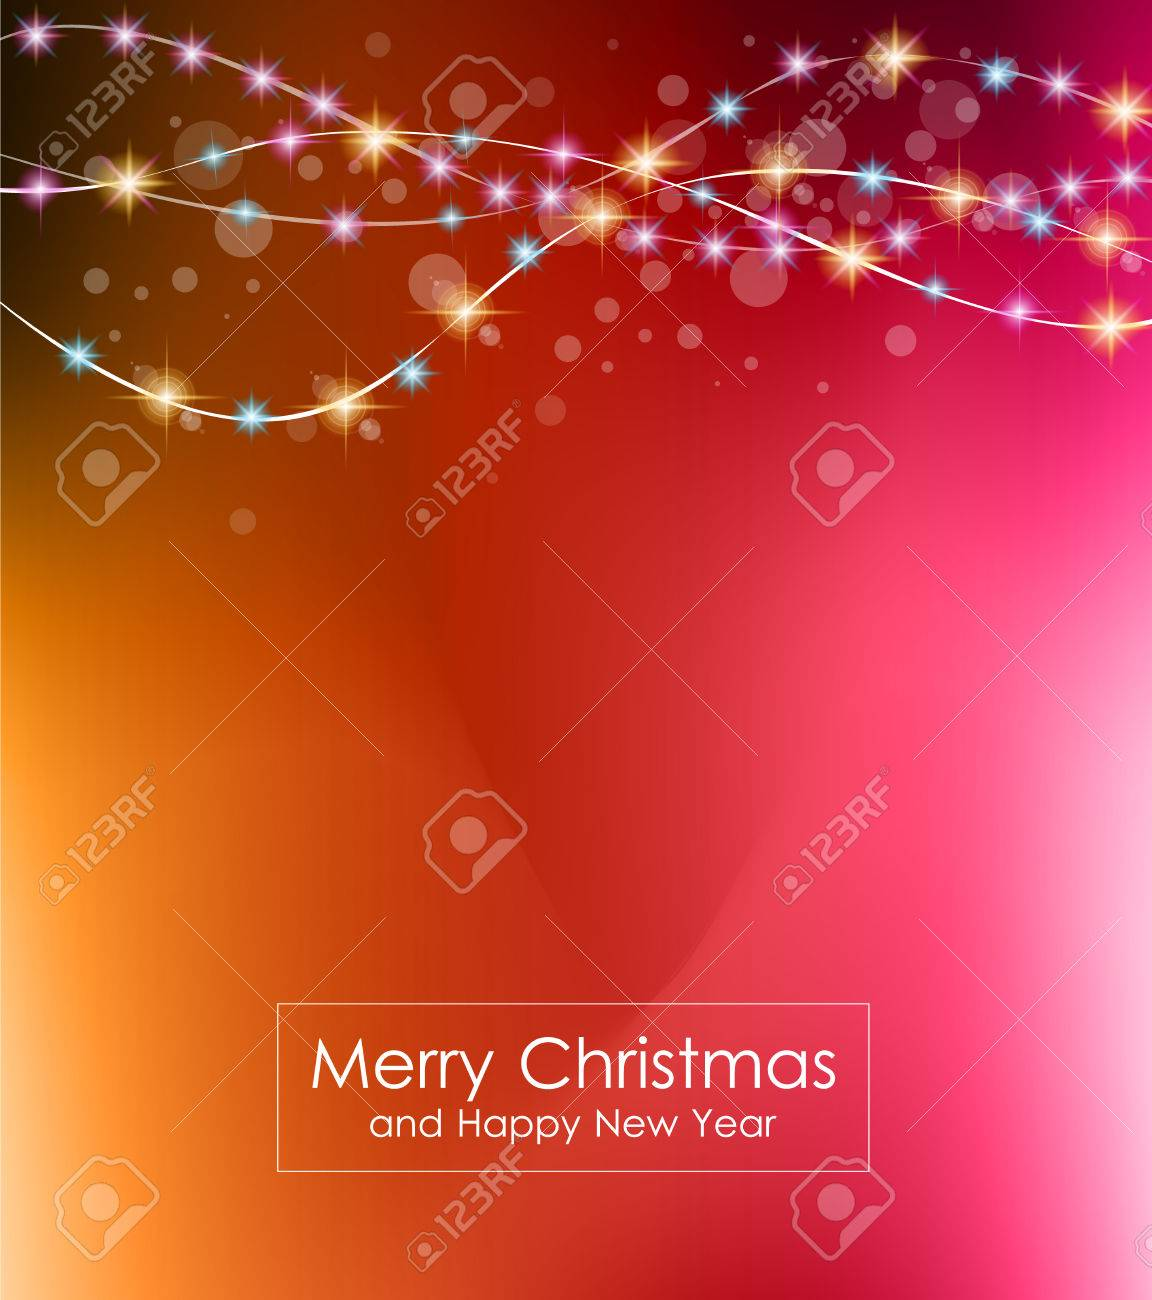 christmas lights background for your seasonal wallpapers, happy